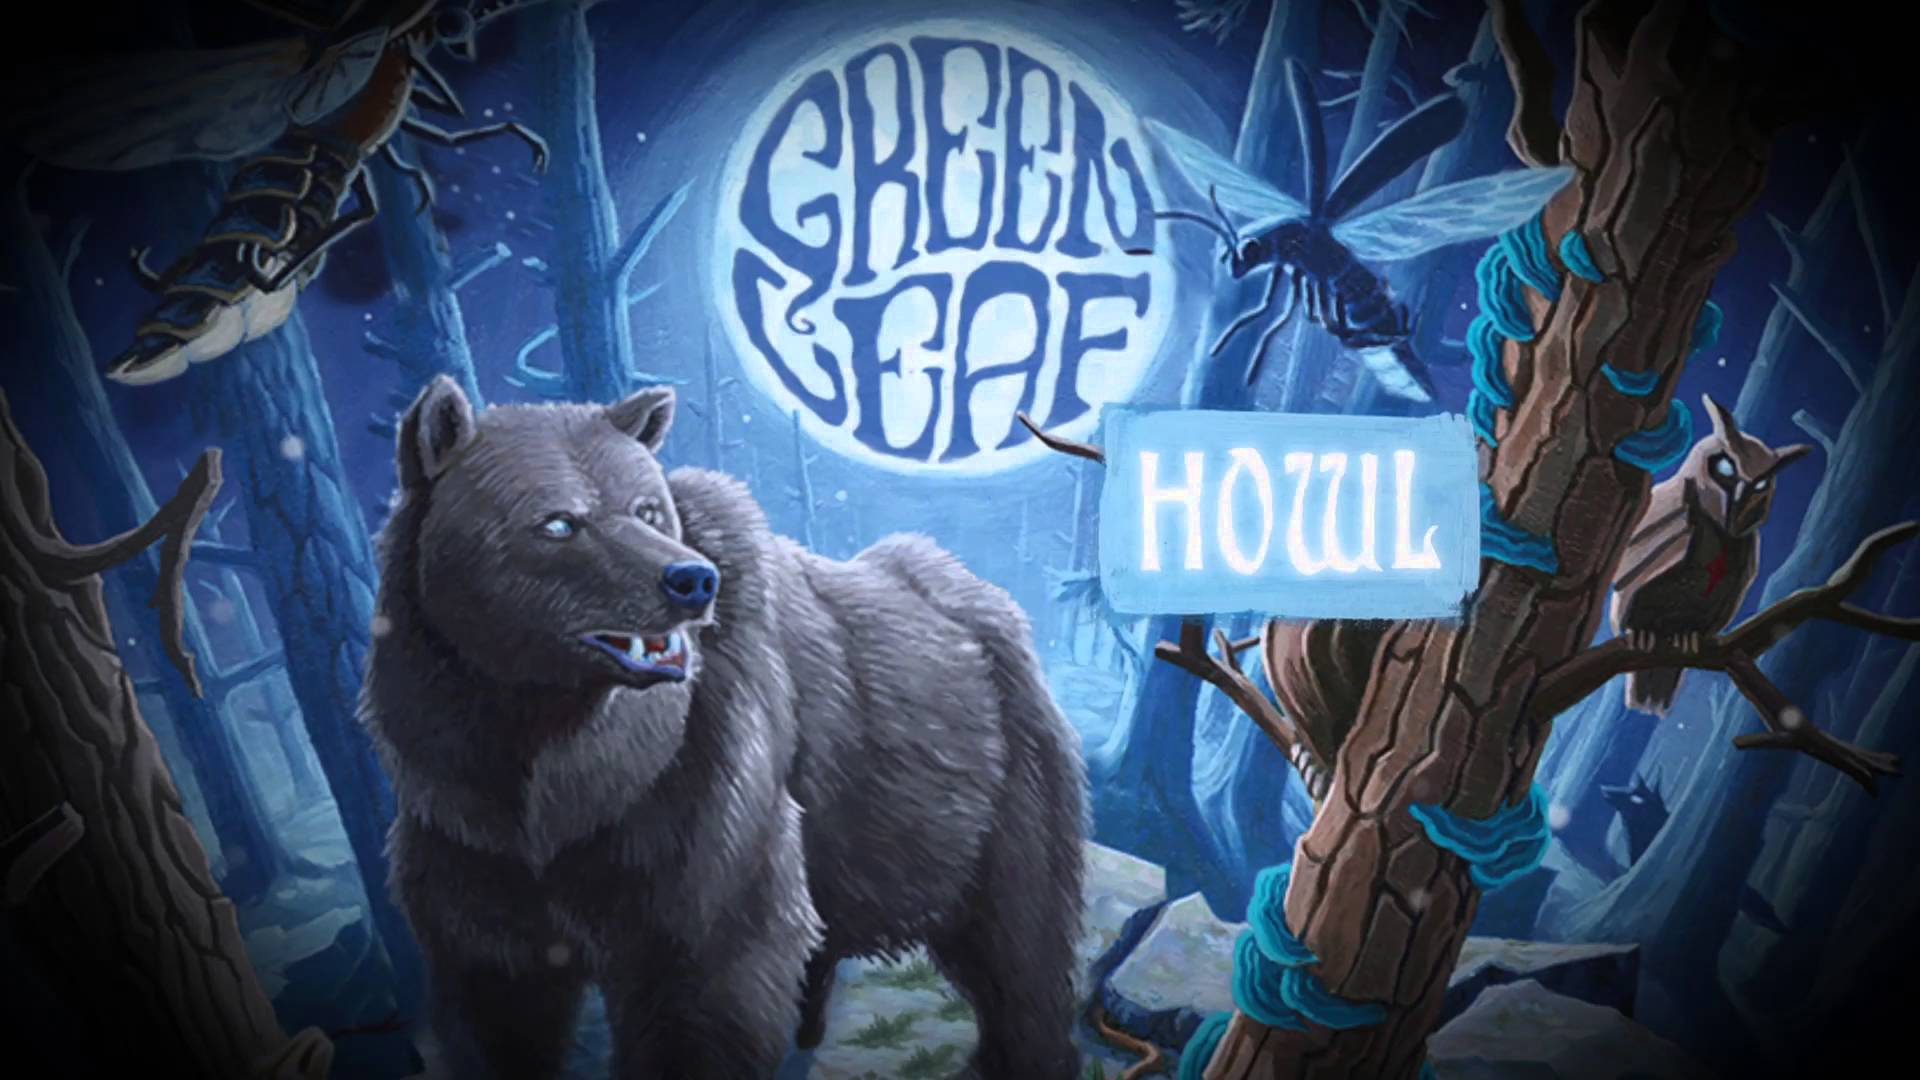 GREENLEAF - Howl (Official Lyric Video) Napalm Records